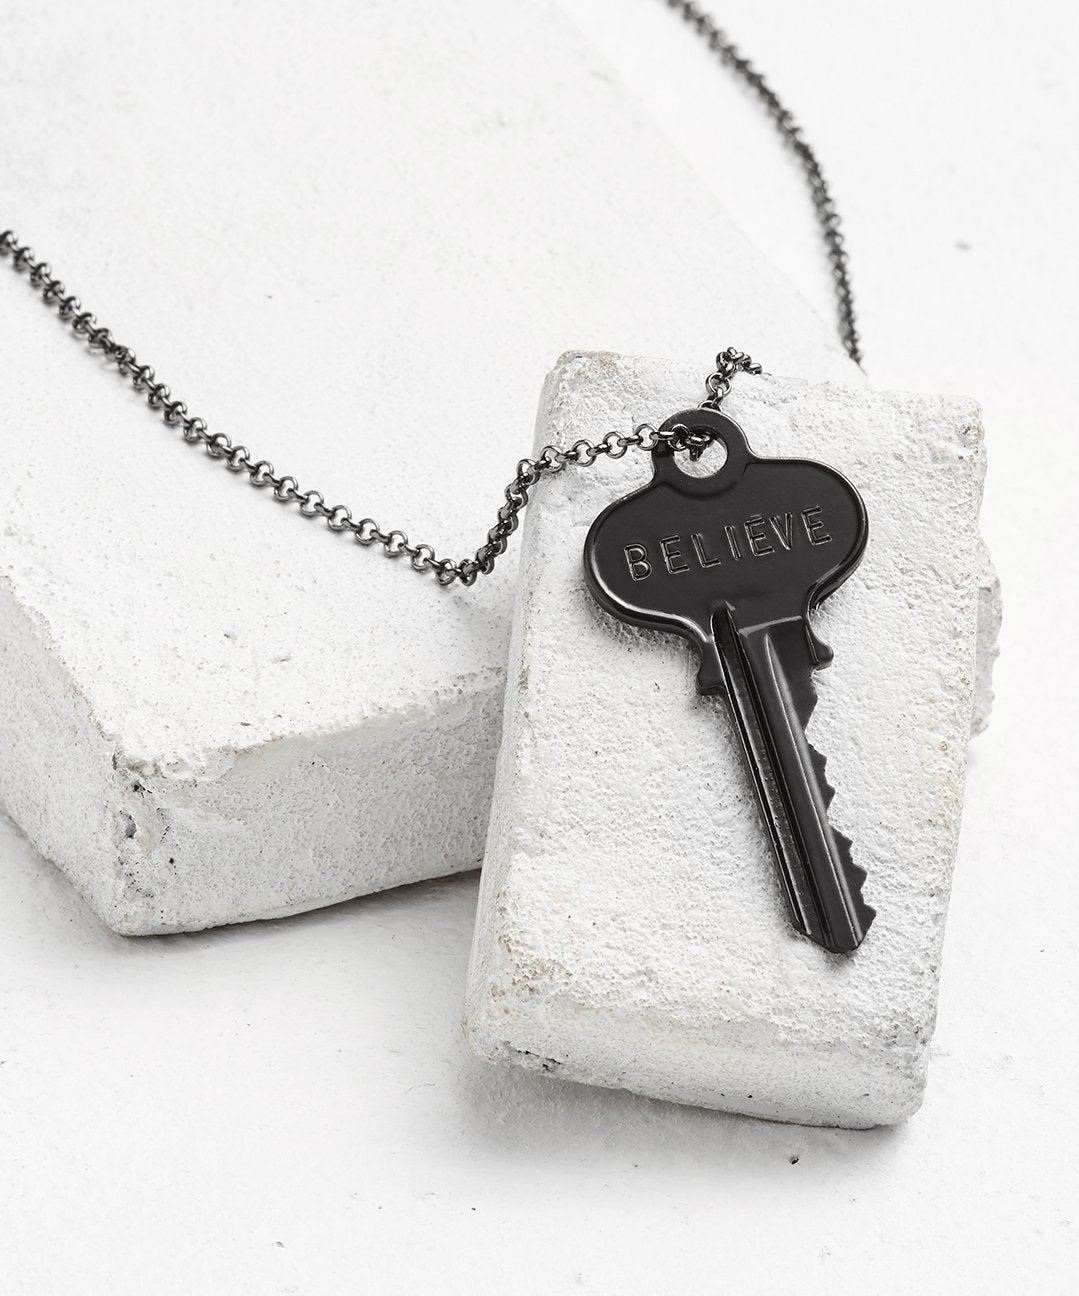 Antique Charcoal Classic Key Necklace - WITH CUSTOM HIDDEN Necklaces The Giving Keys BELIEVE Antique Charcoal